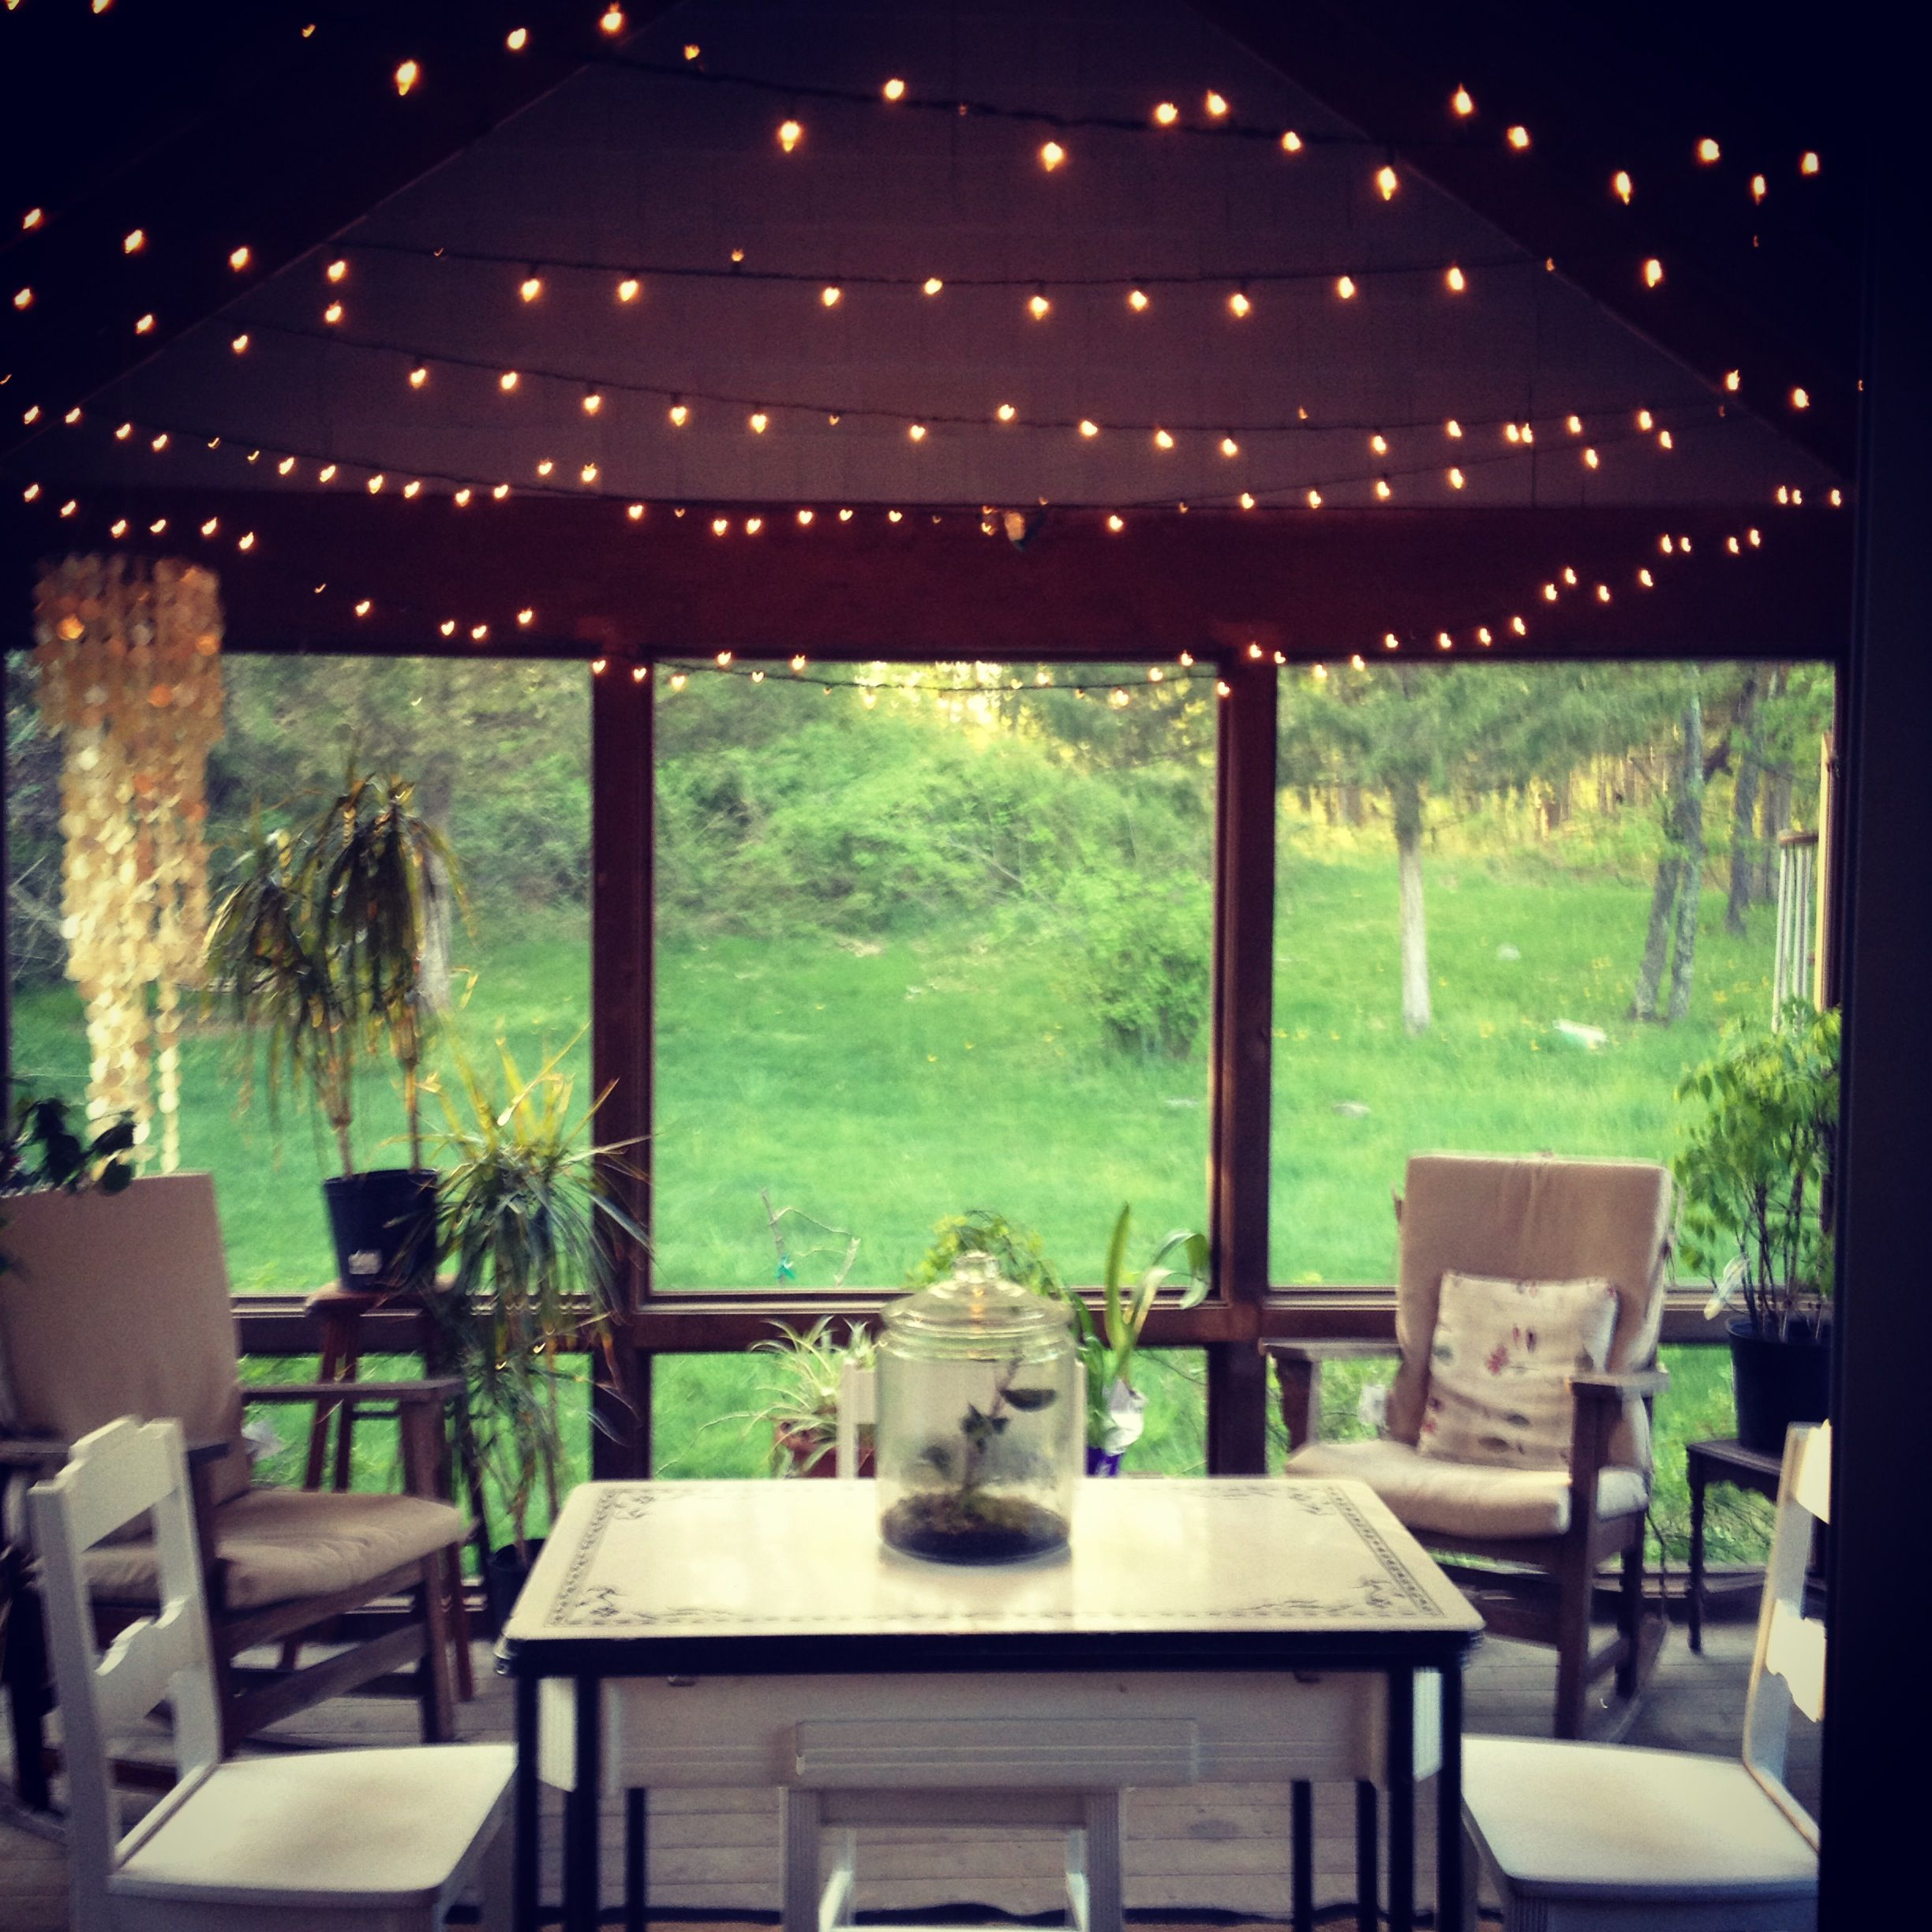 Art Deco Porch: Small Screened Porch With Lights And Enamel Table, White